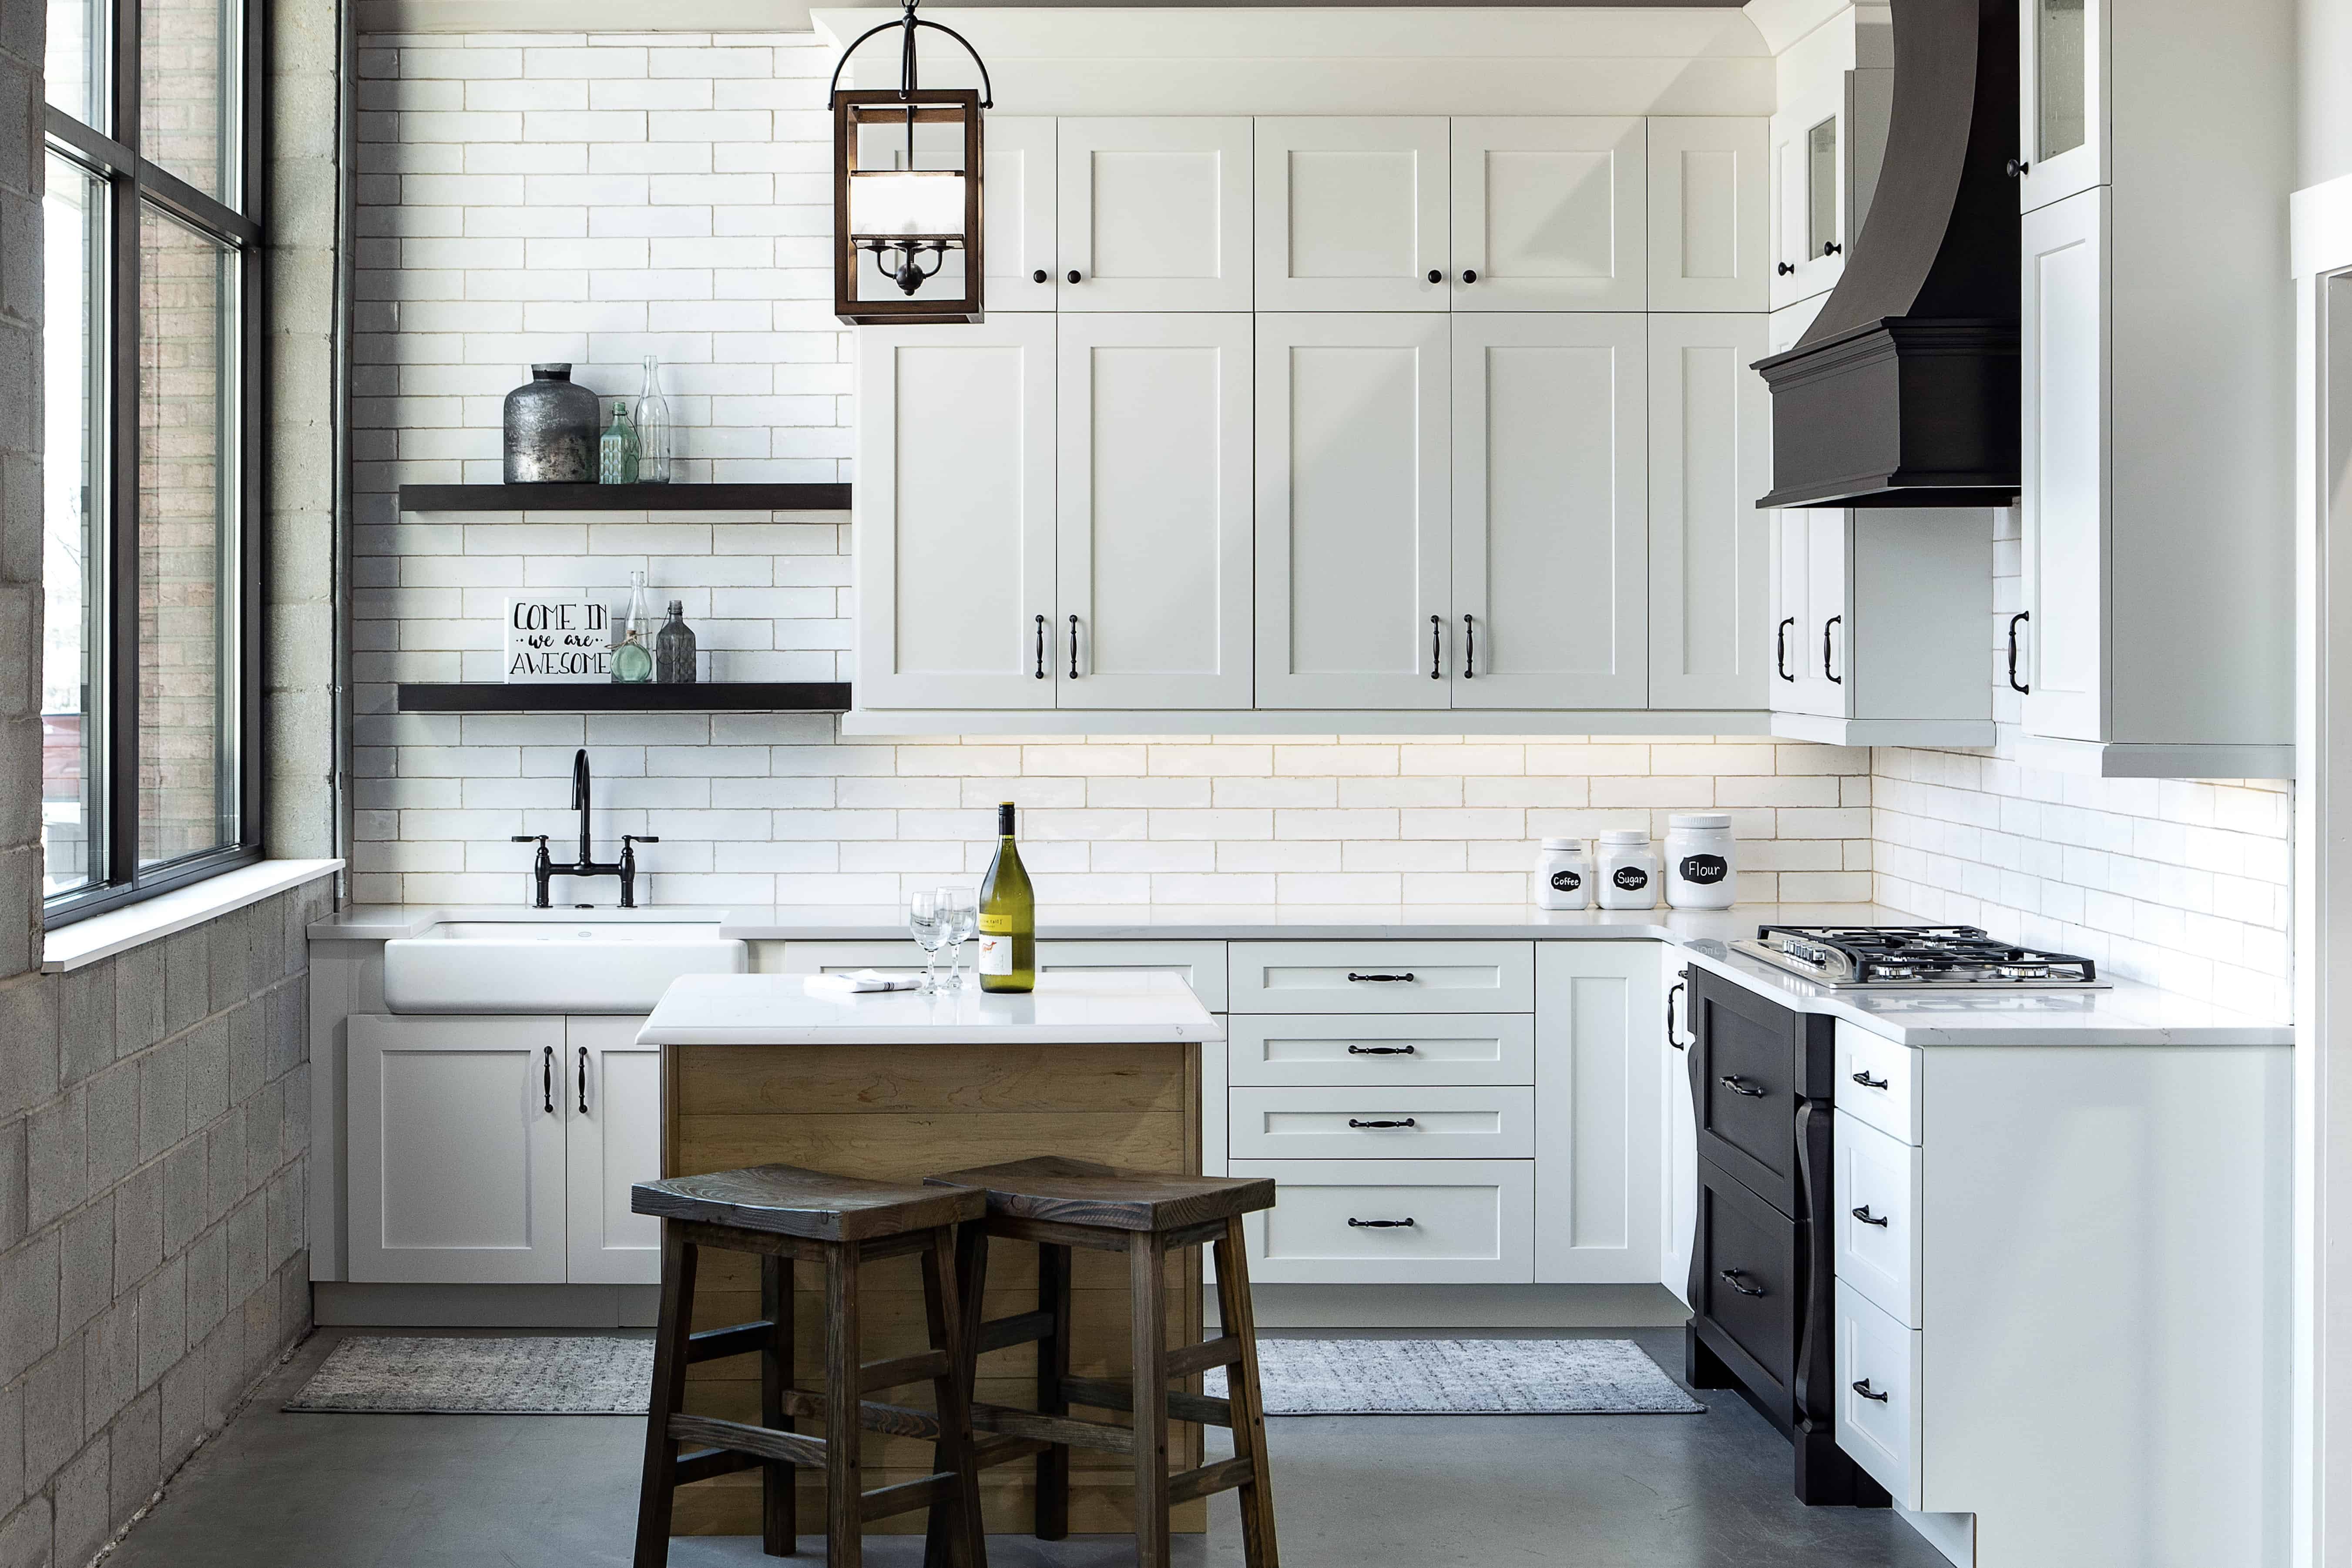 Kith - Picture Perfect Kitchen Designs